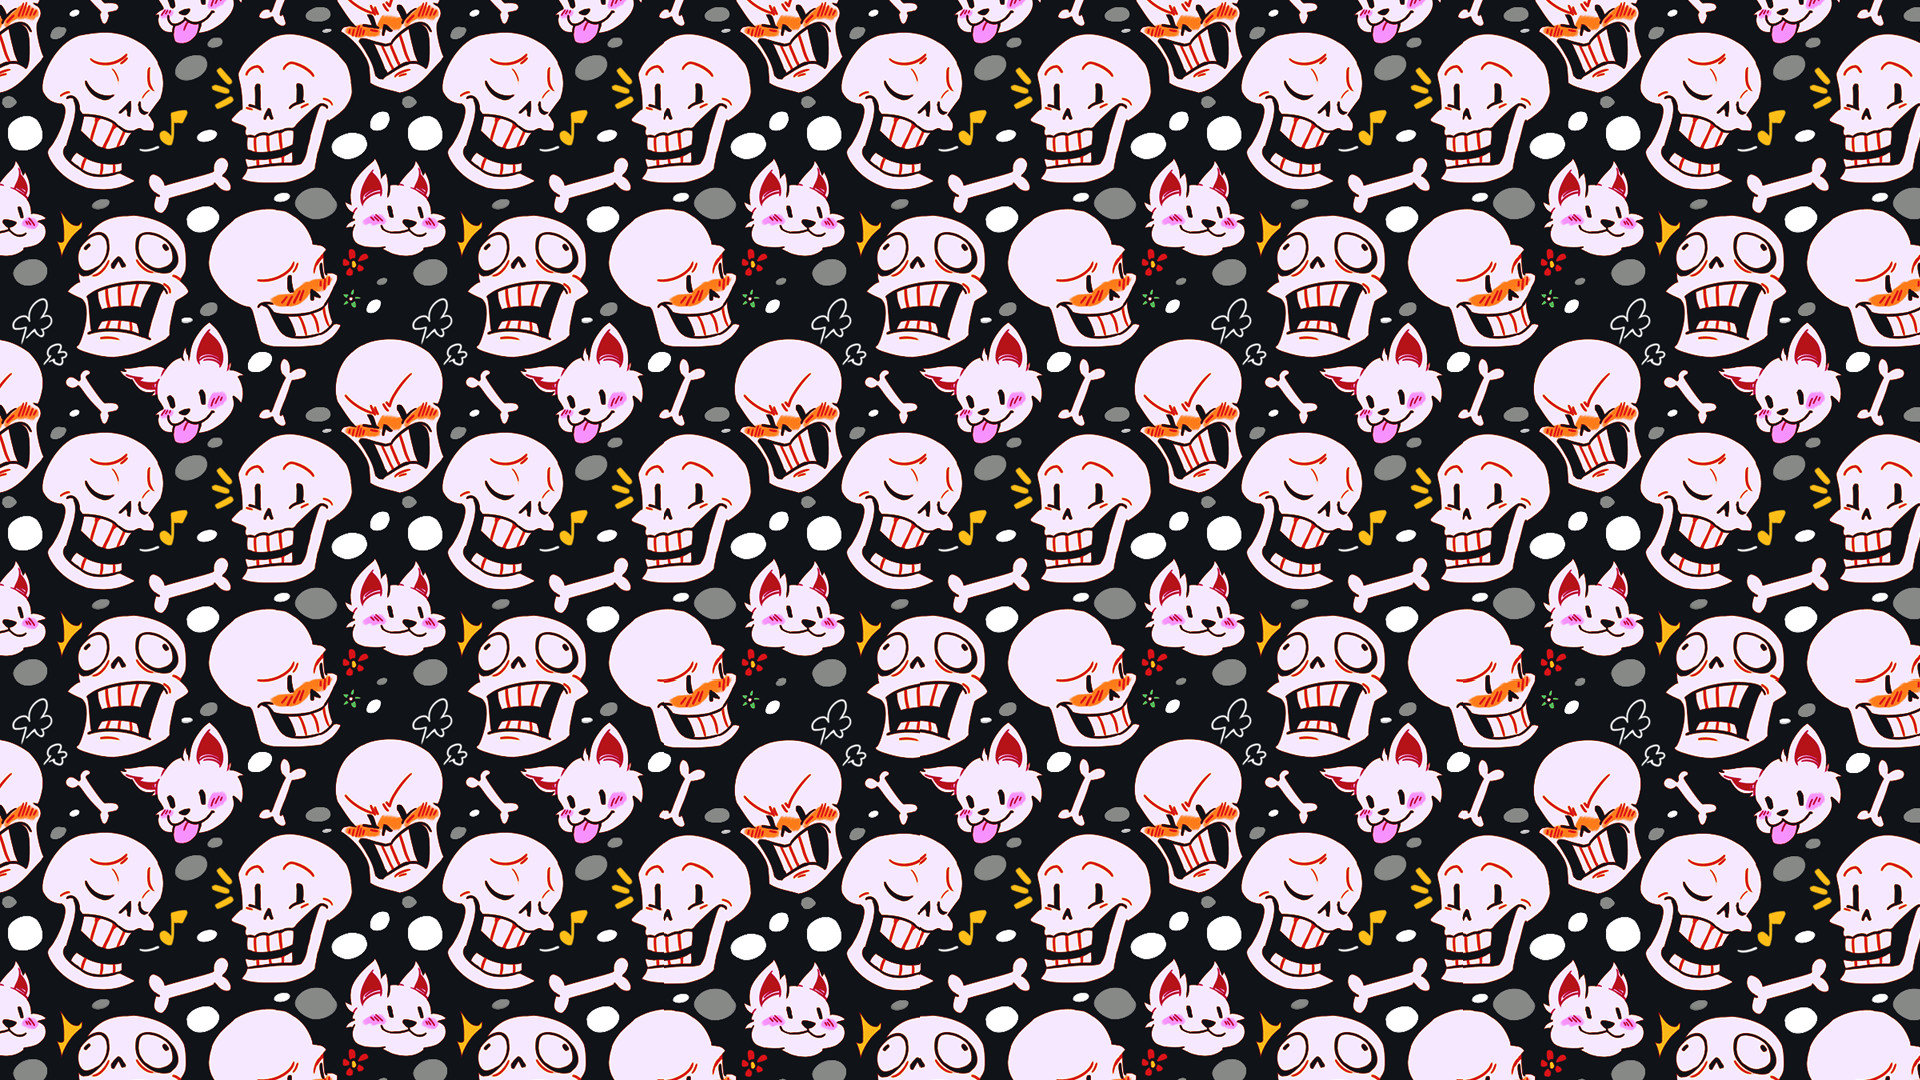 1920x1080 - Undertale Wallpaper 1920x1080 33